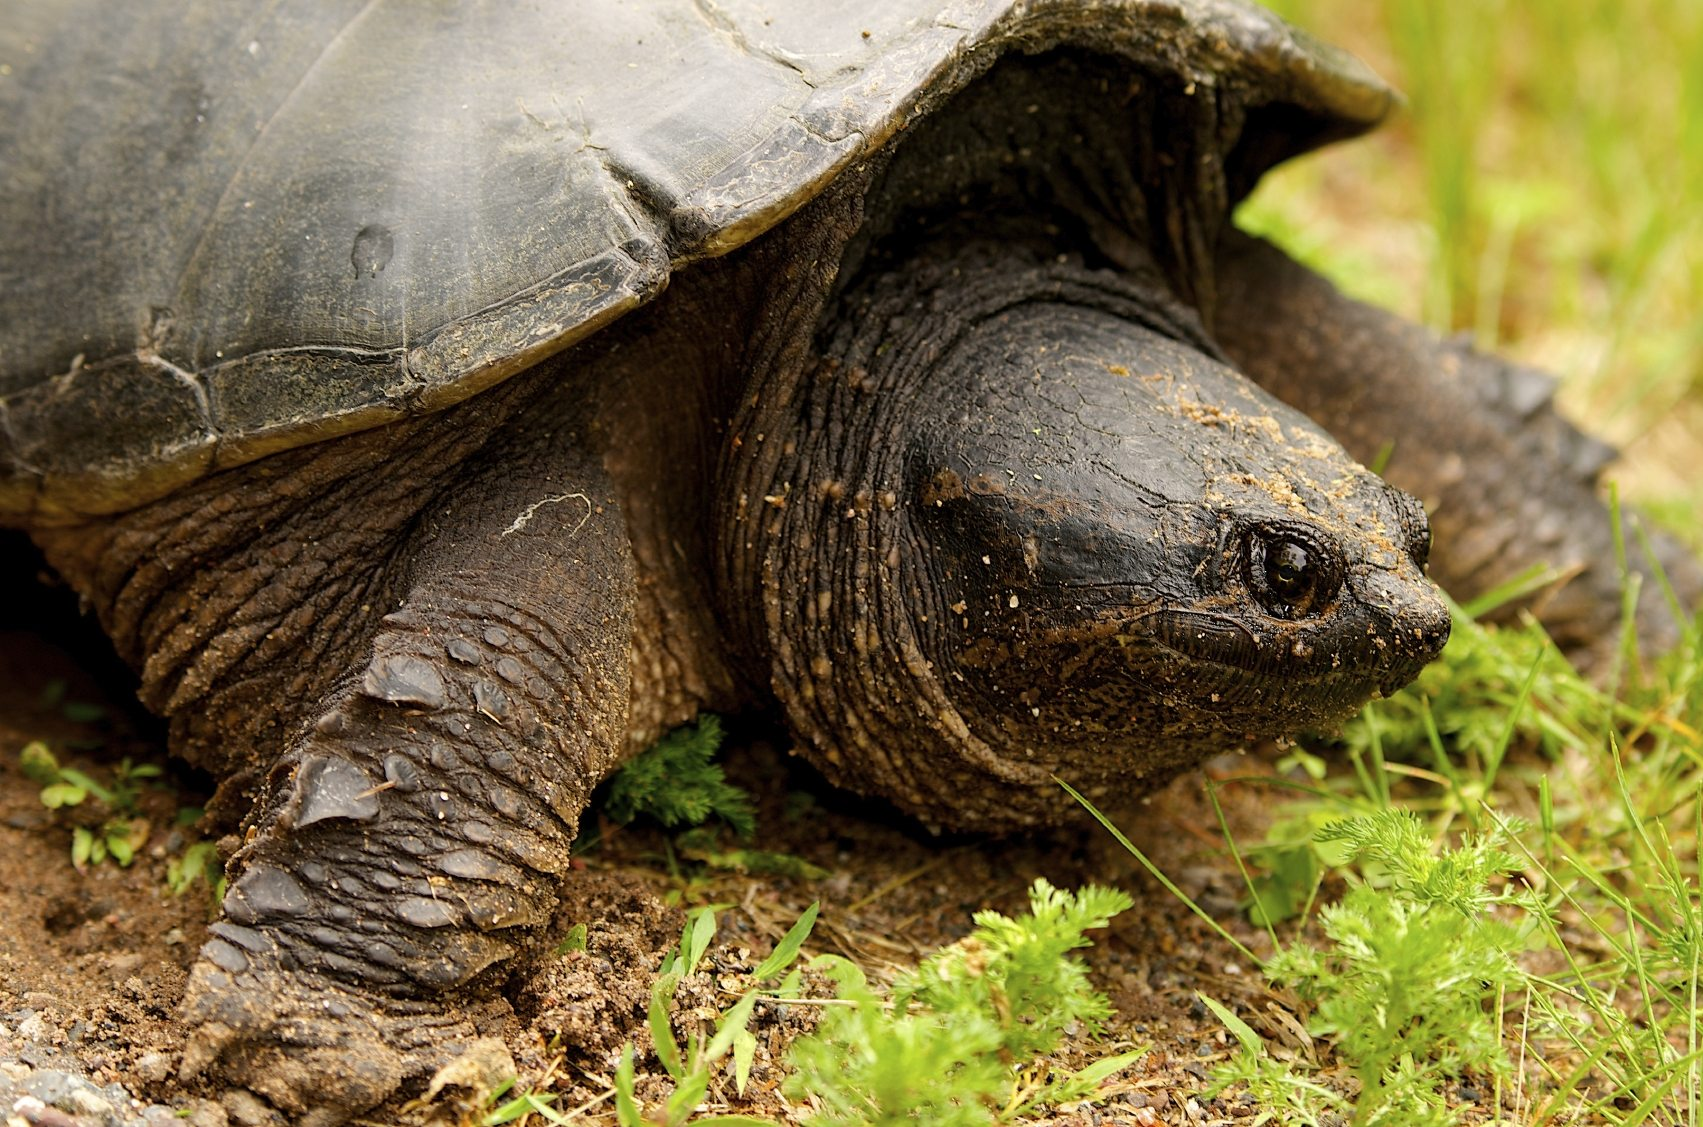 Snapping Turtle Control How To Get Rid Of Turtles In My Yard